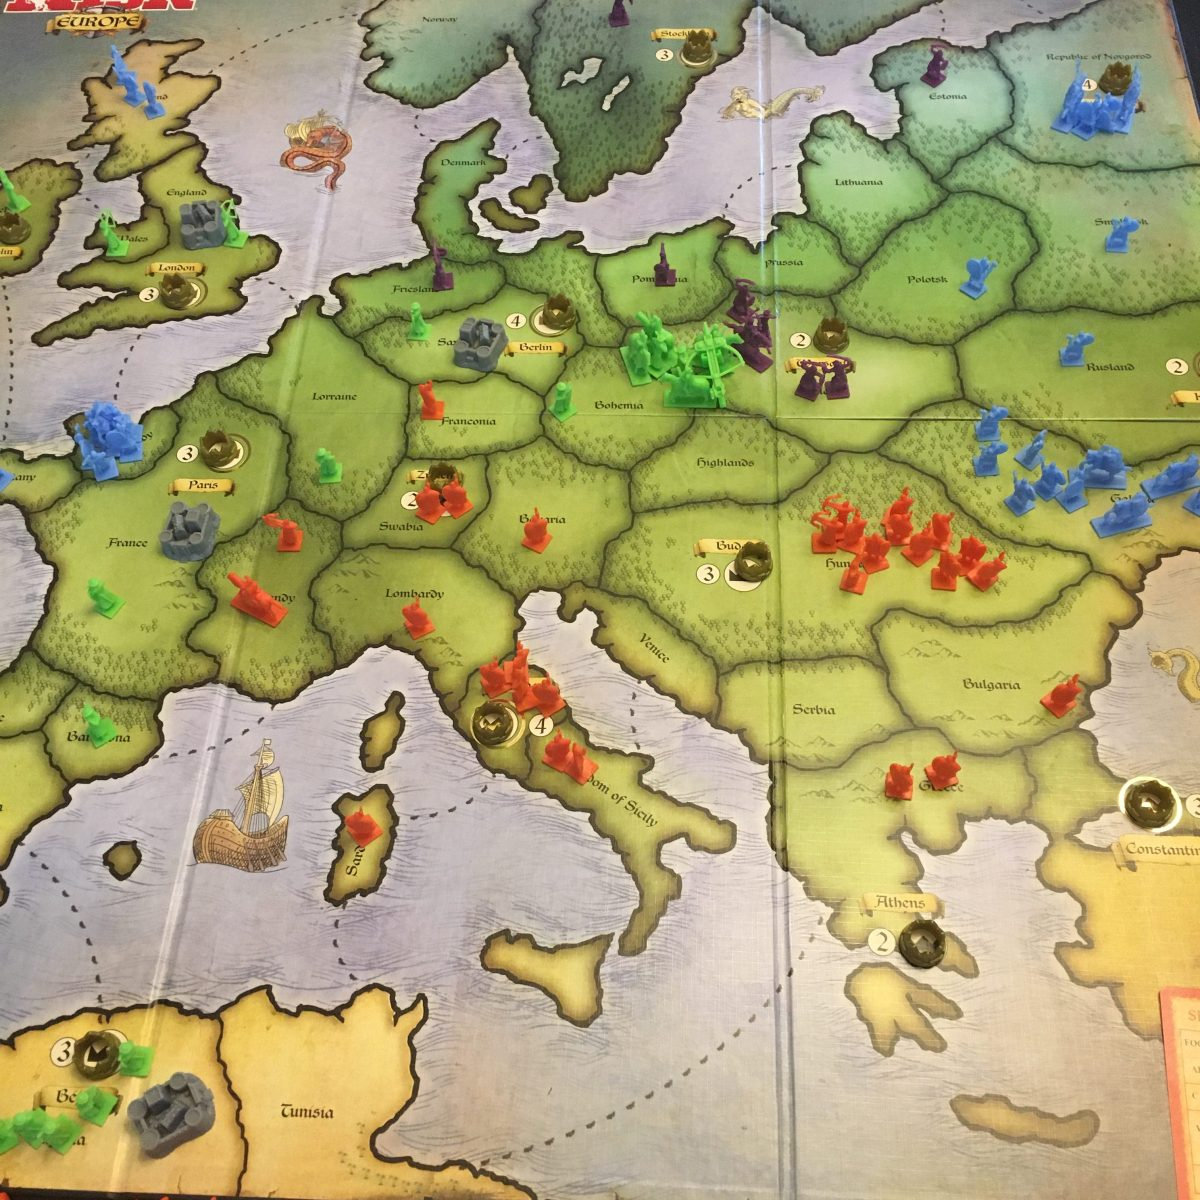 Turn 7 - Purple takes Warsaw, which might have been a mistake.